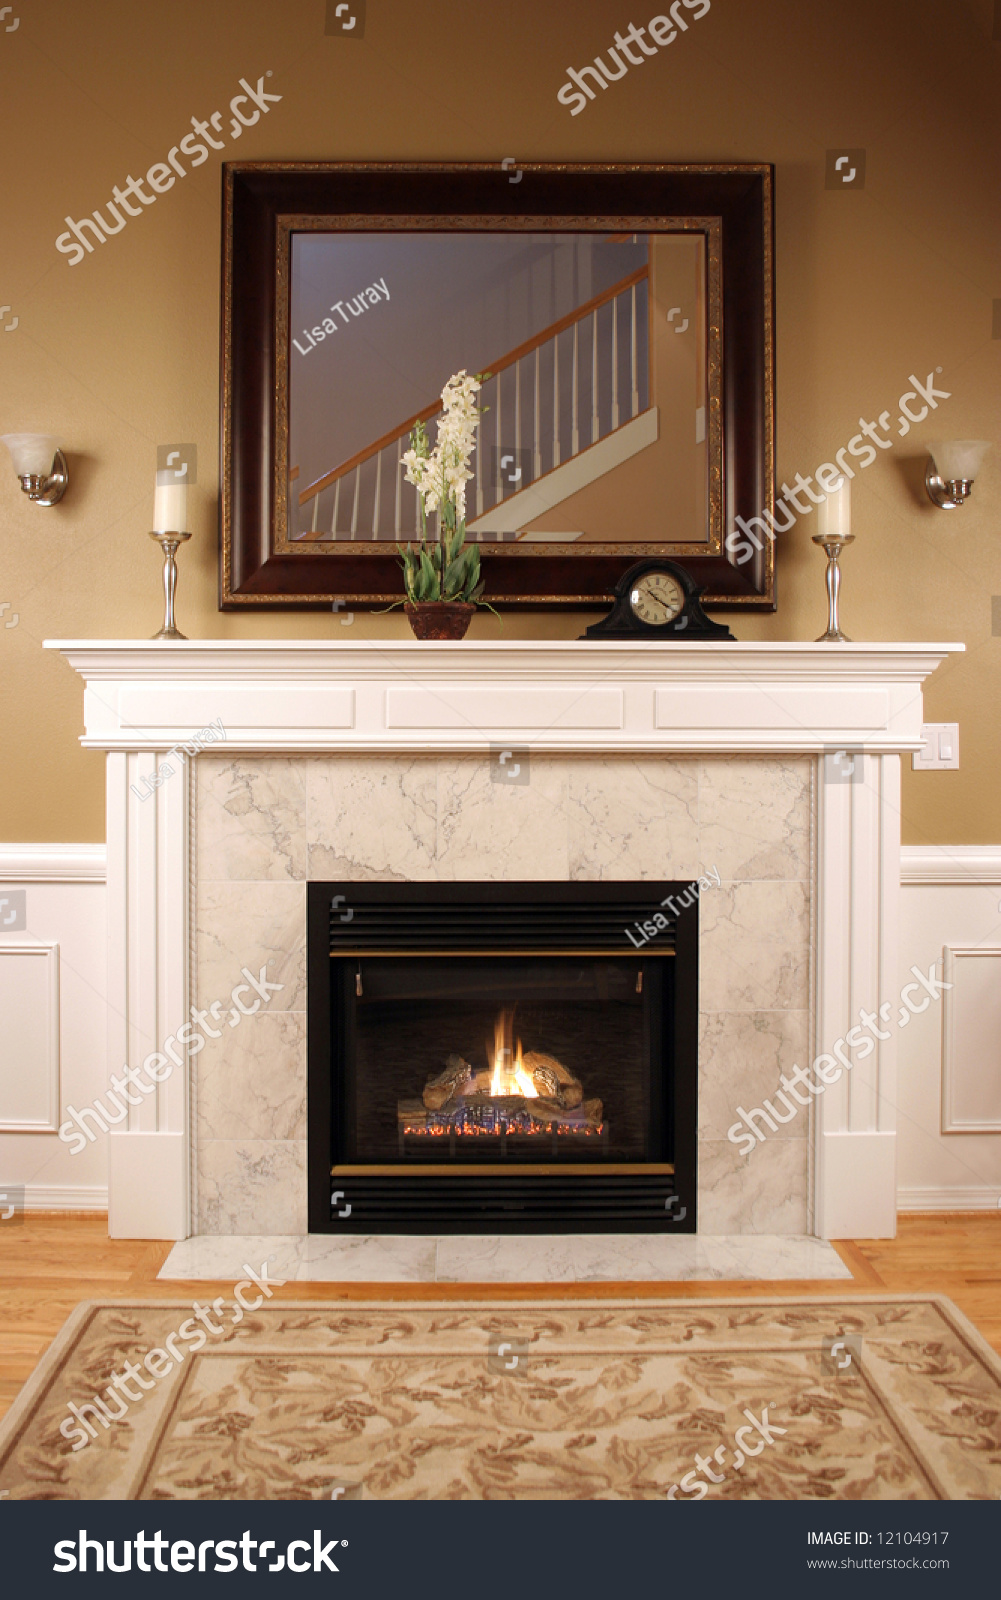 Fireplace With Beautiful Woodwork A Framed Mirror And Warm Inviting